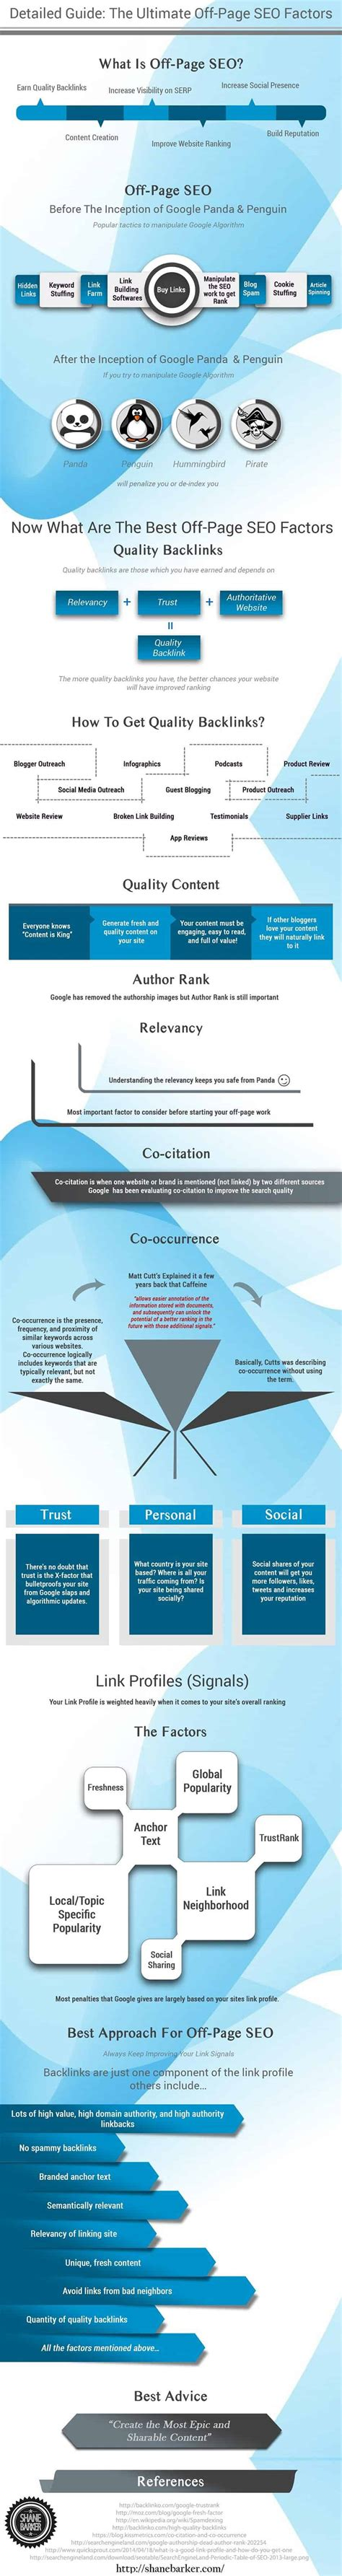 Off Page Seo Factors Infographic